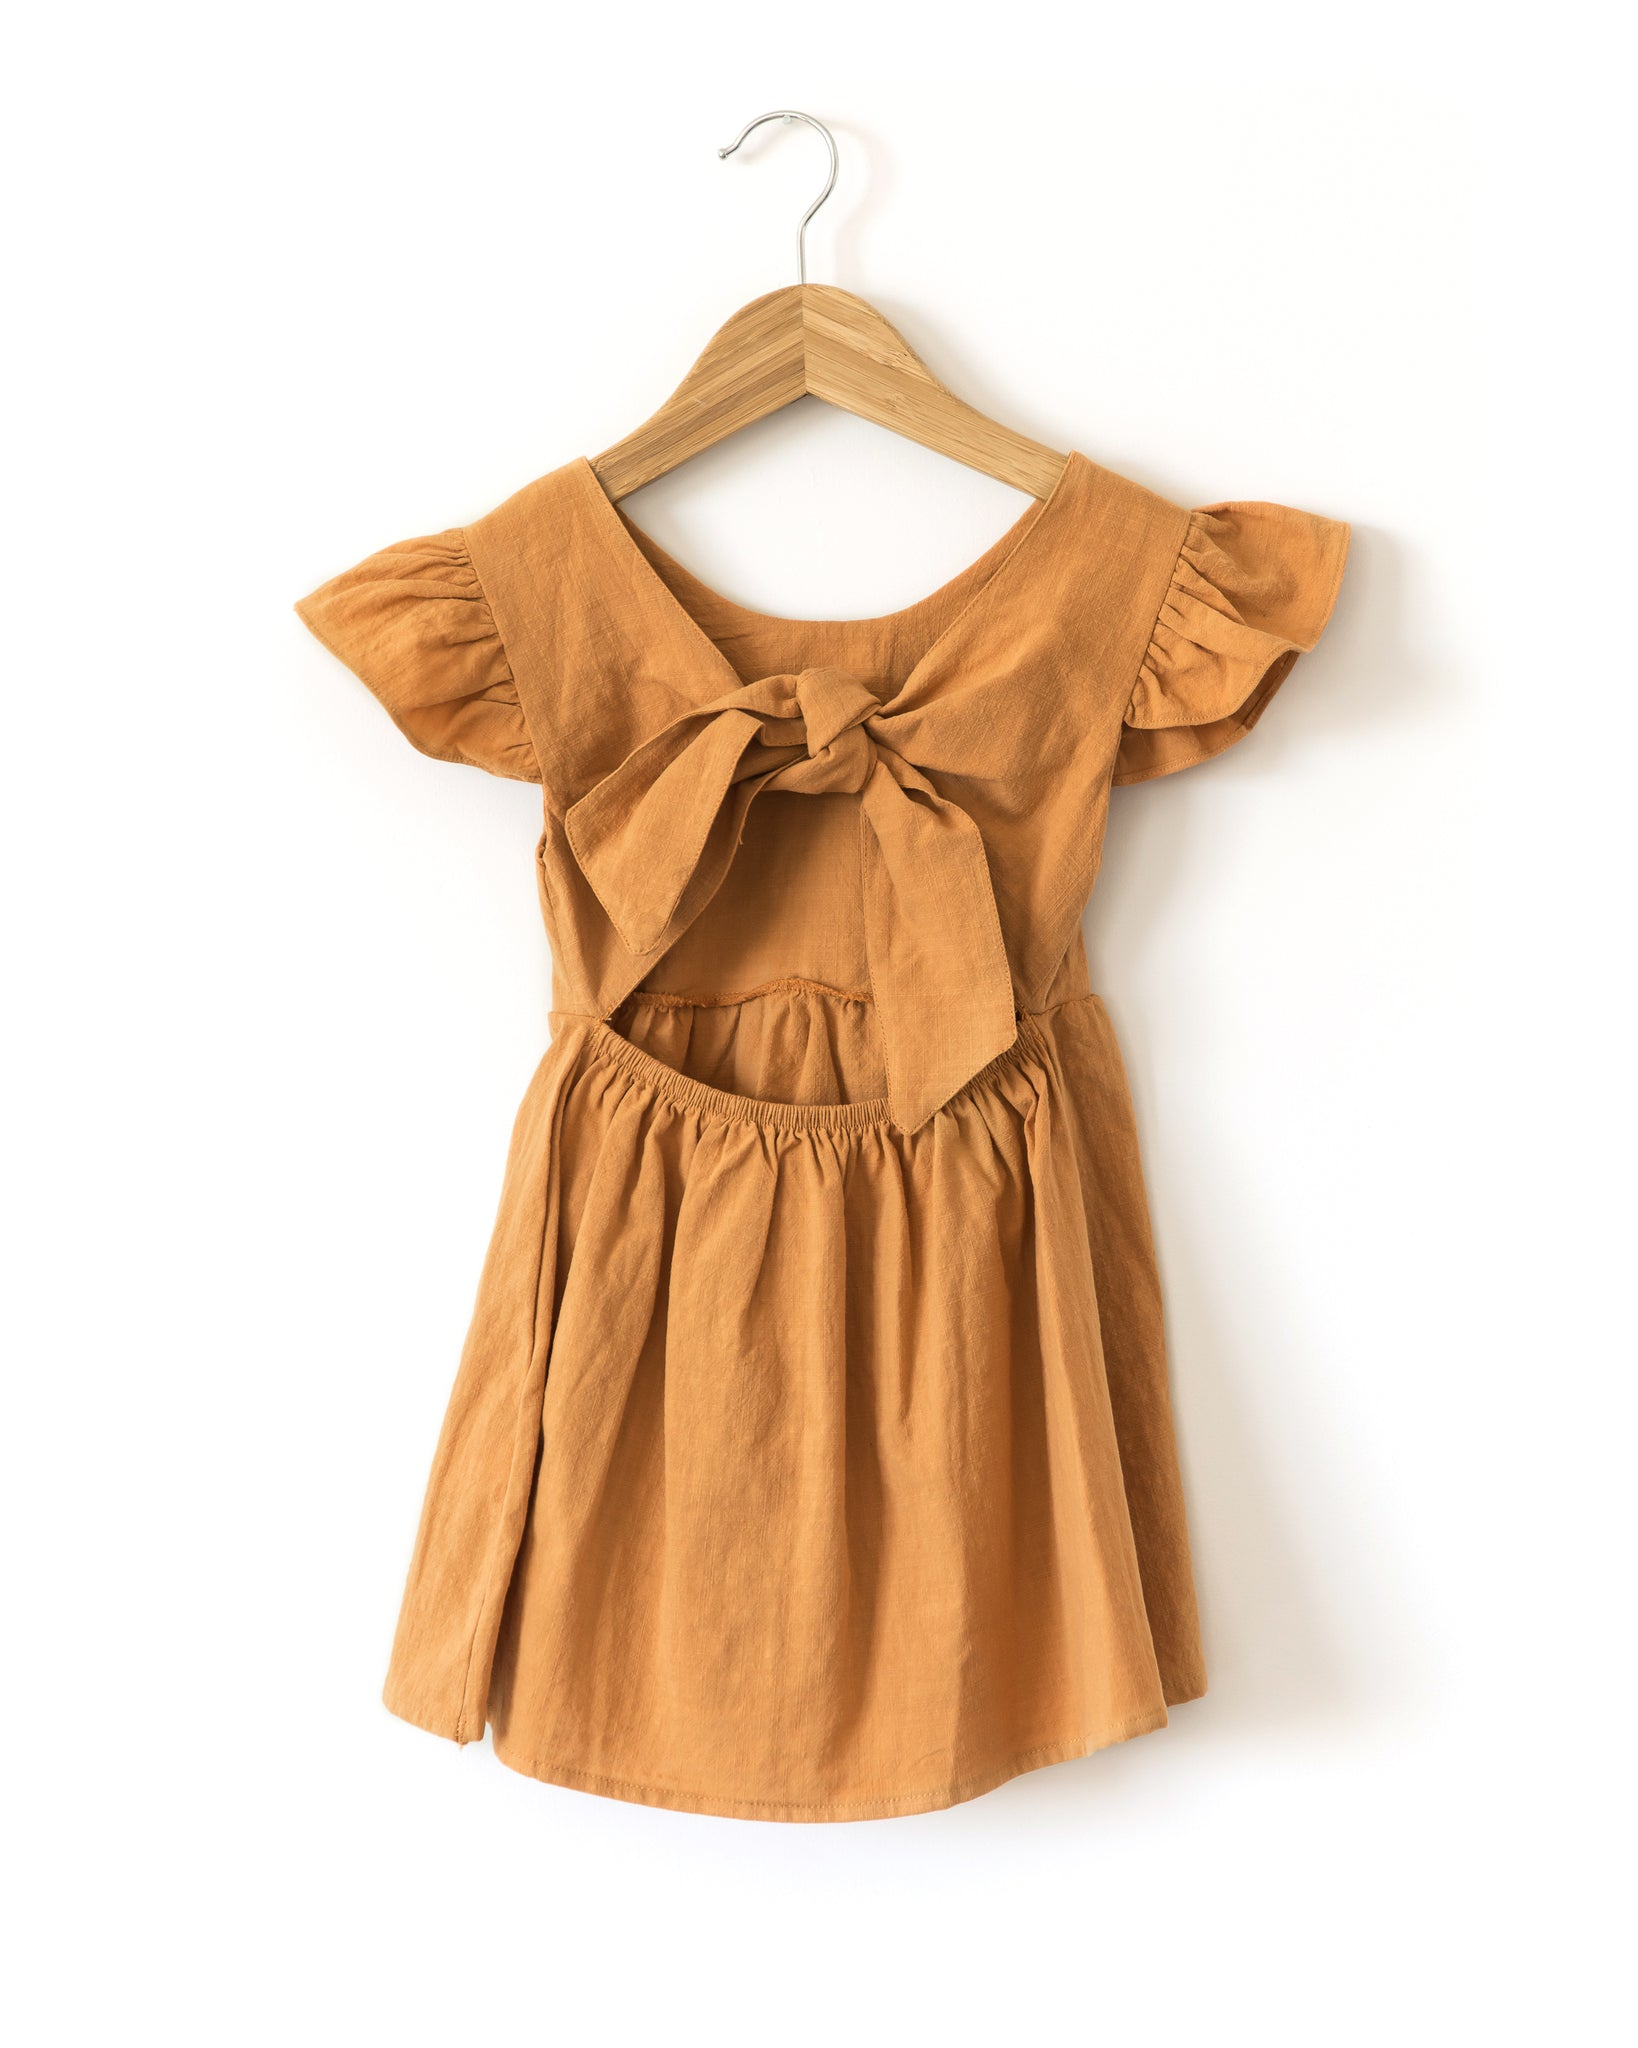 Aria Dress in Orange - Reverie Threads